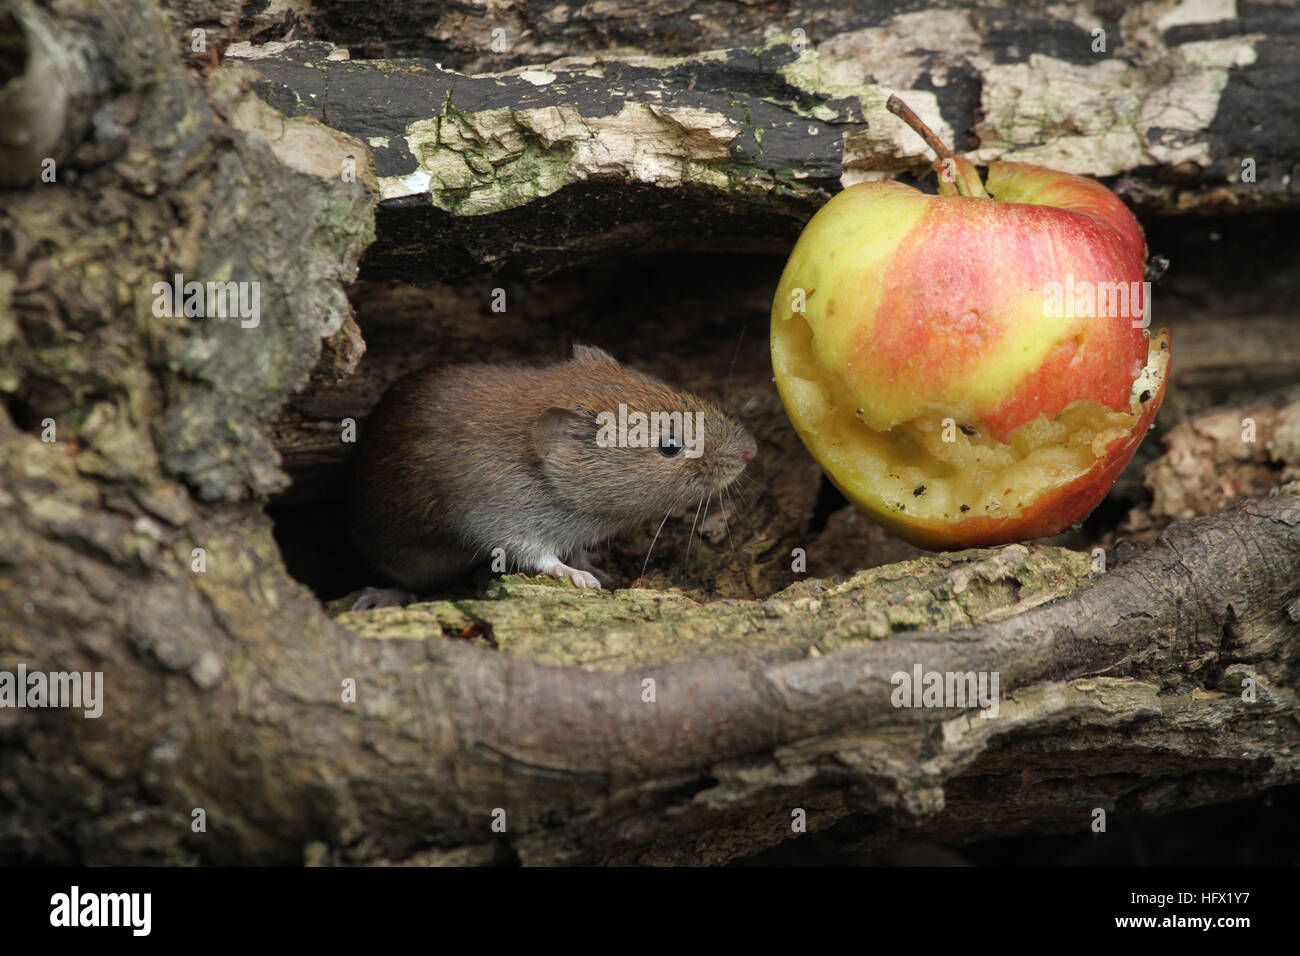 A Bank Vole (Myodes glareolus) with an apple that it has been eating. - Stock Image